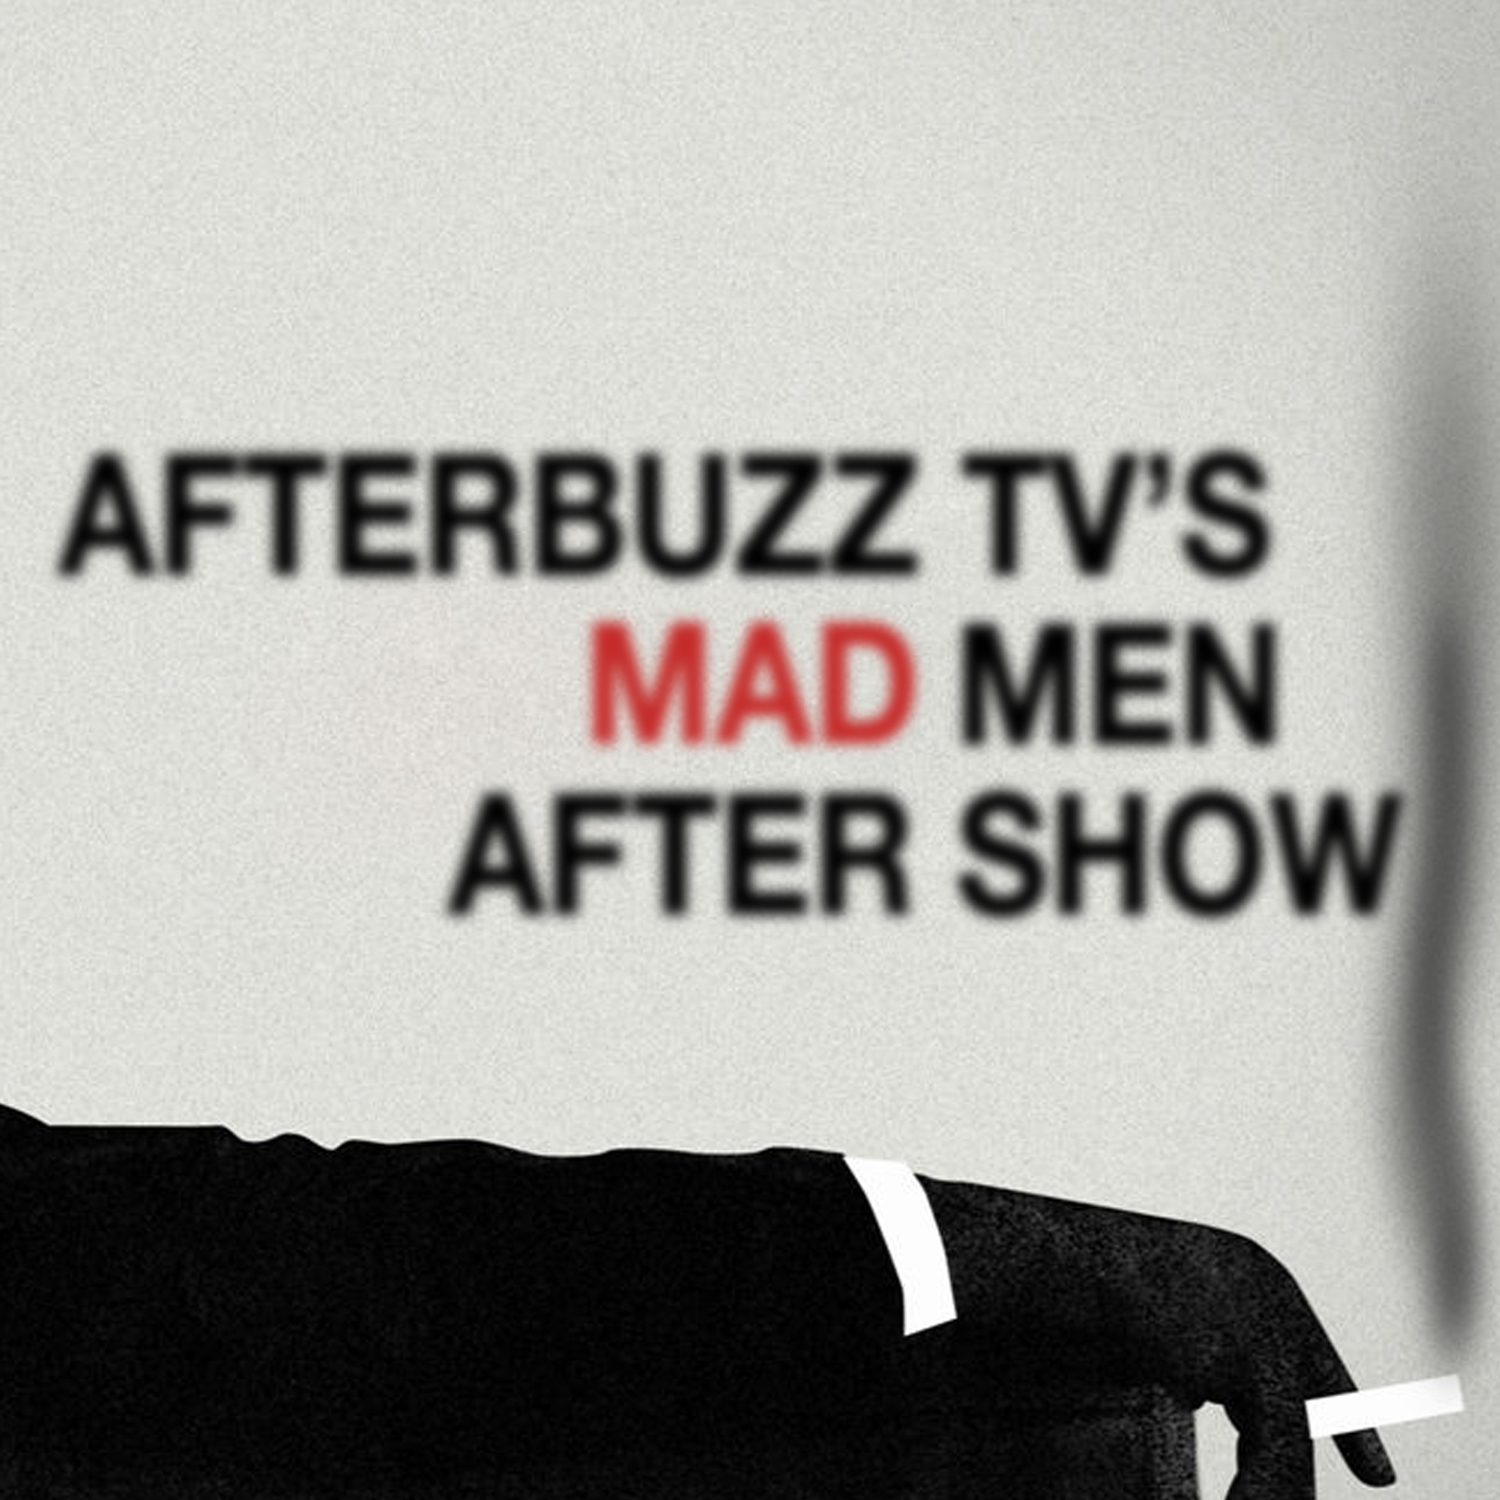 Mad Men AfterBuzz TV AfterShow